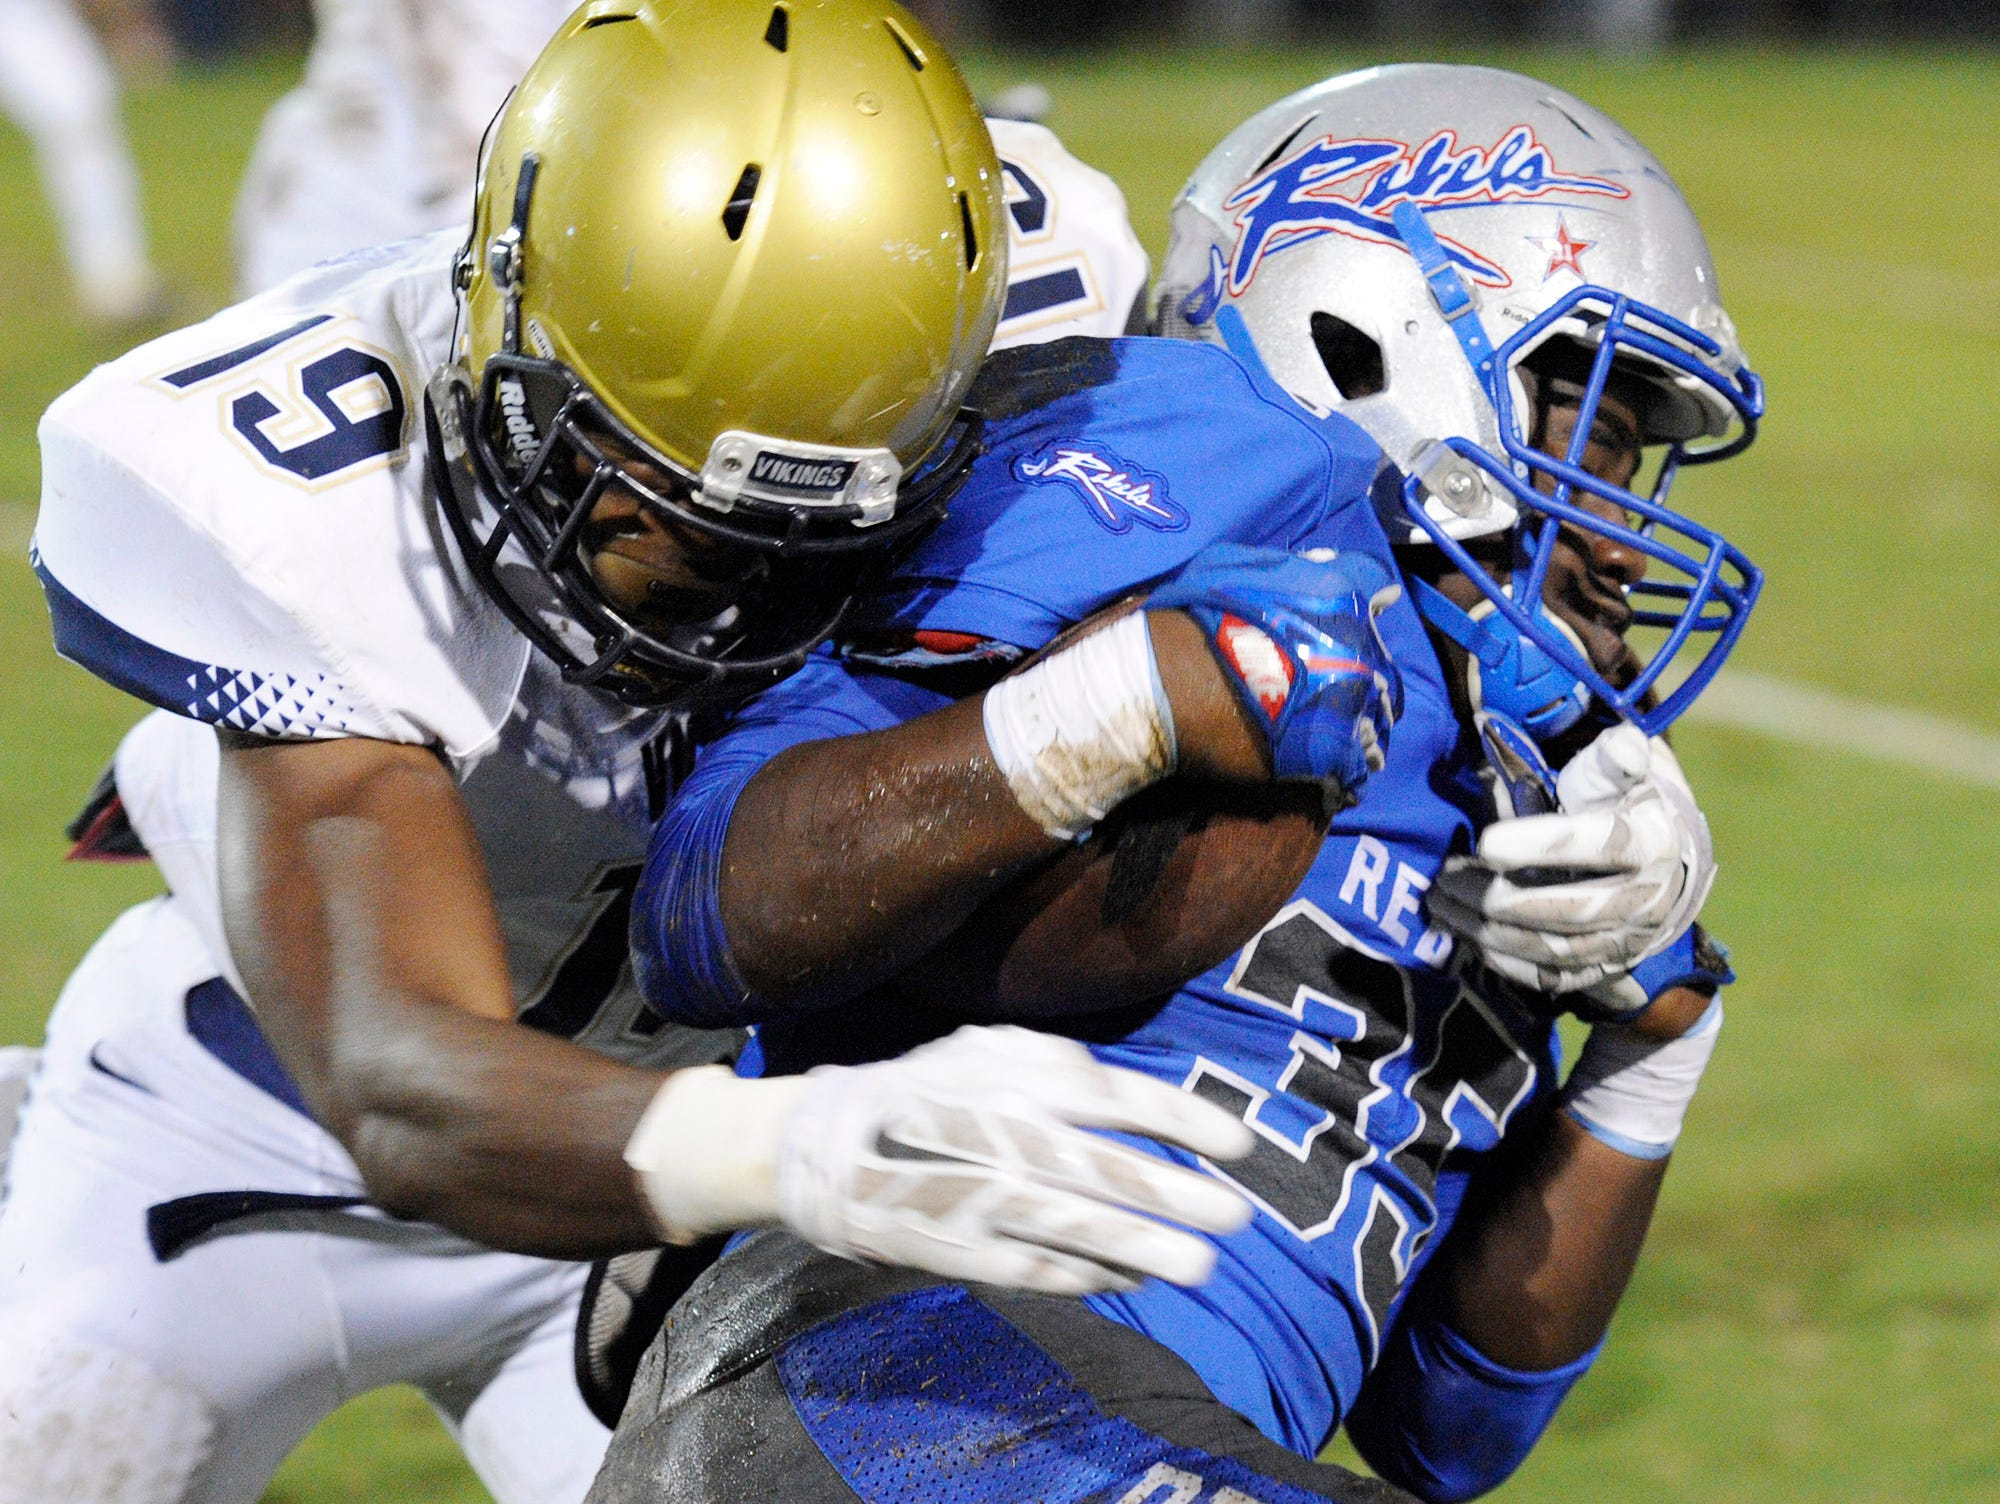 Byrnes running back Quez Mayes (35) is stopped by Spartanburg's Mike Murphy (19).